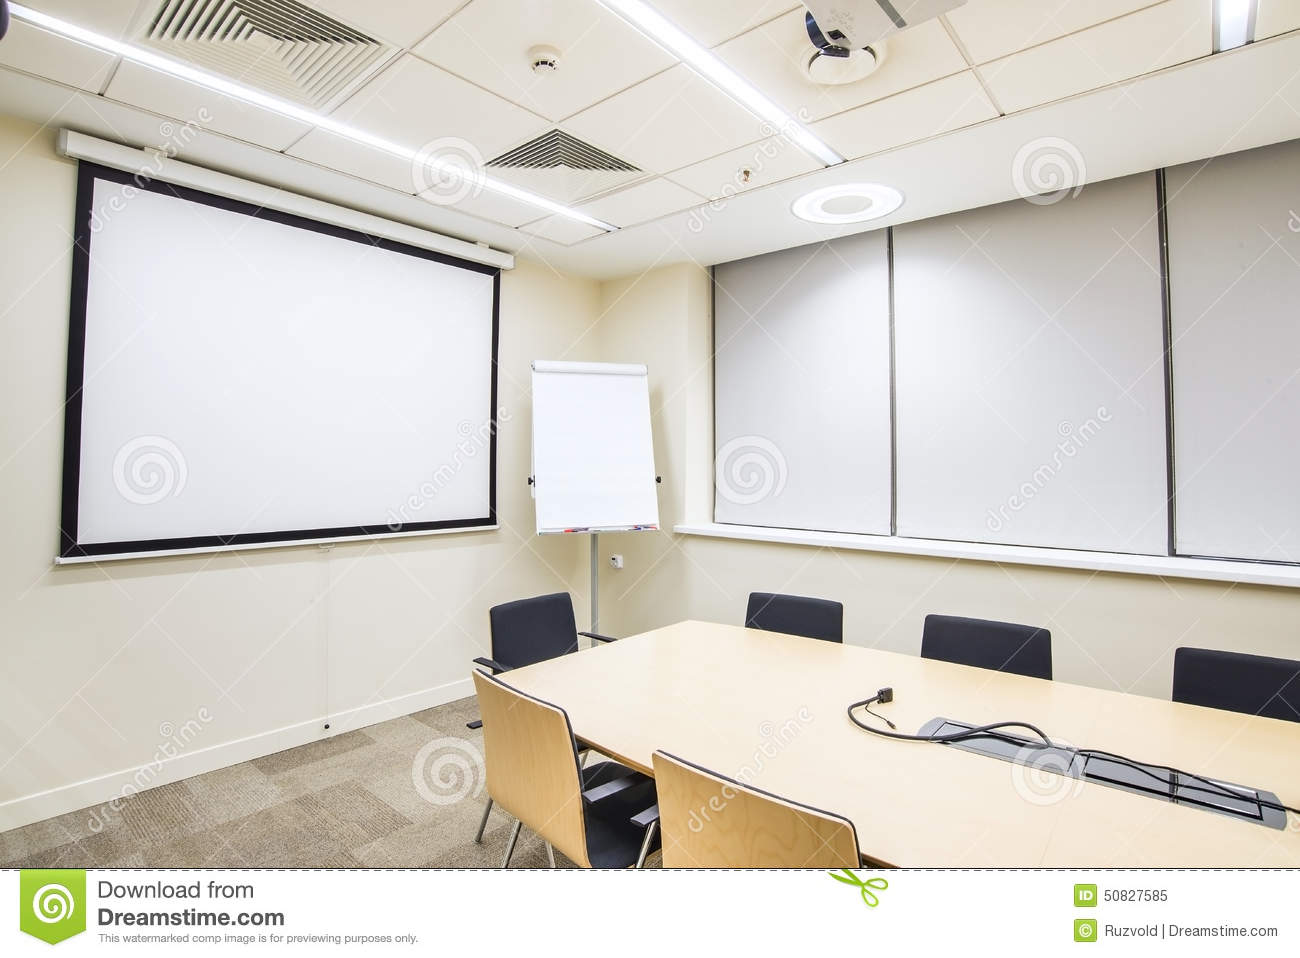 modern white desk chair argos directors covers small meeting or training room with tv projector stock photo - image: 50827585